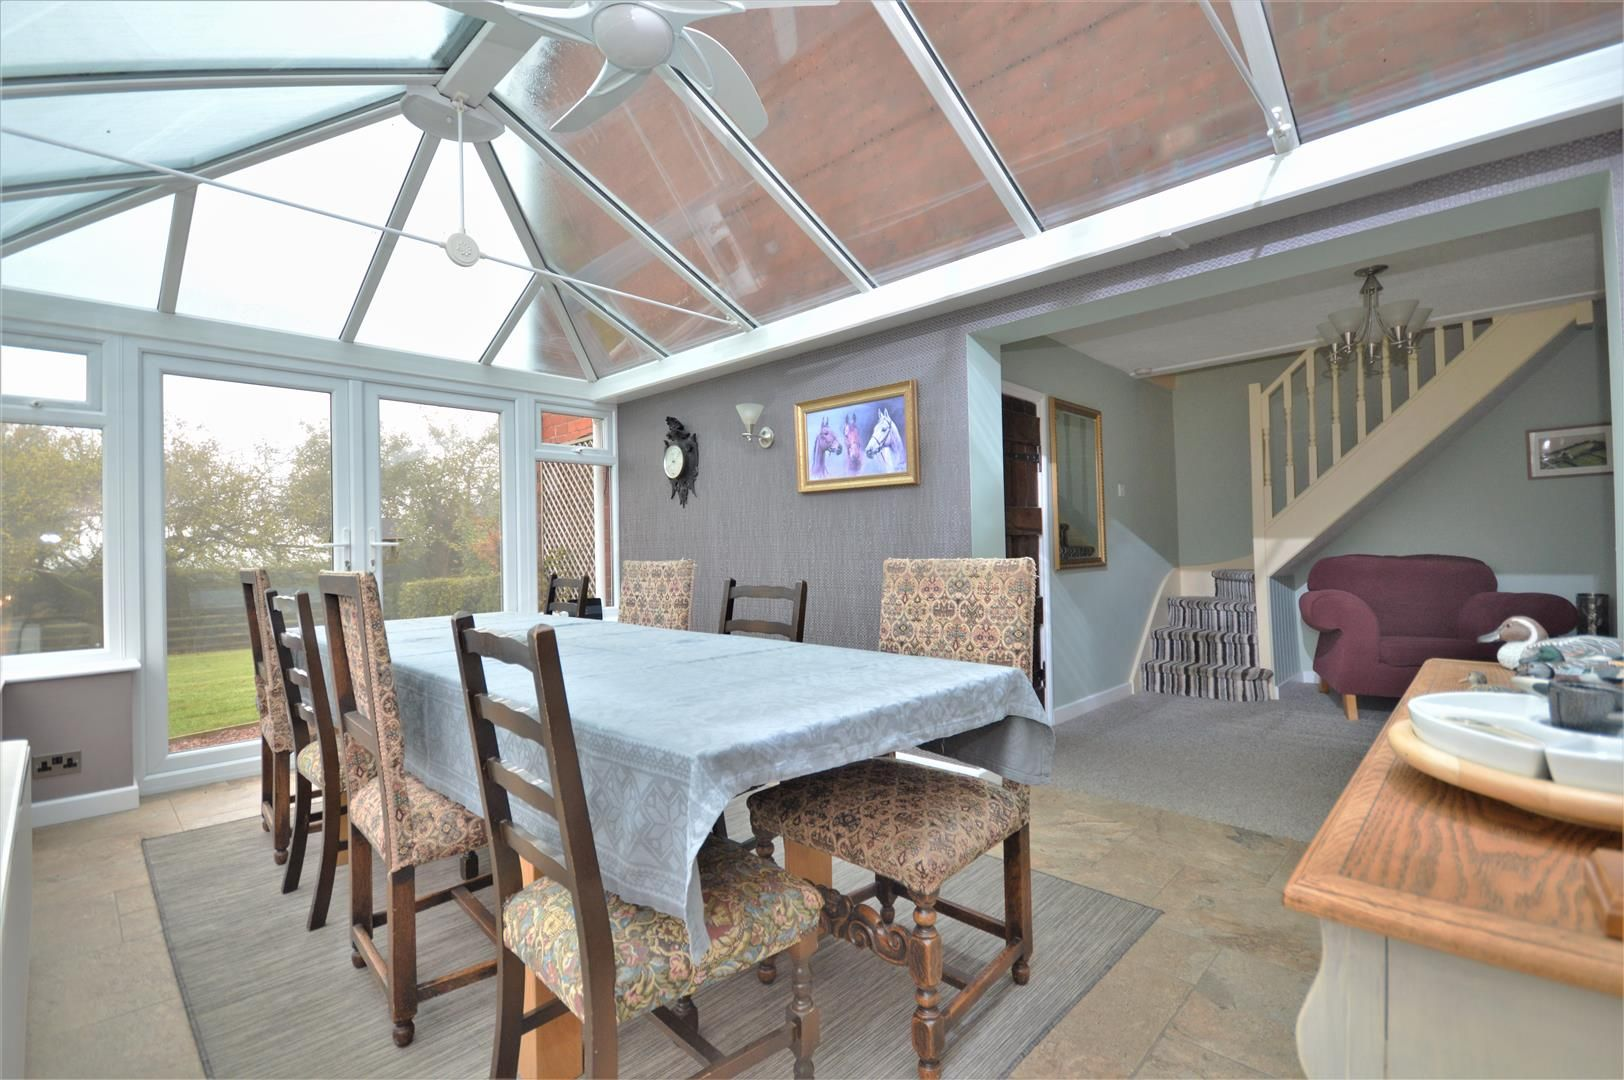 3 bed semi-detached for sale in Sutton St. Nicholas, HR1